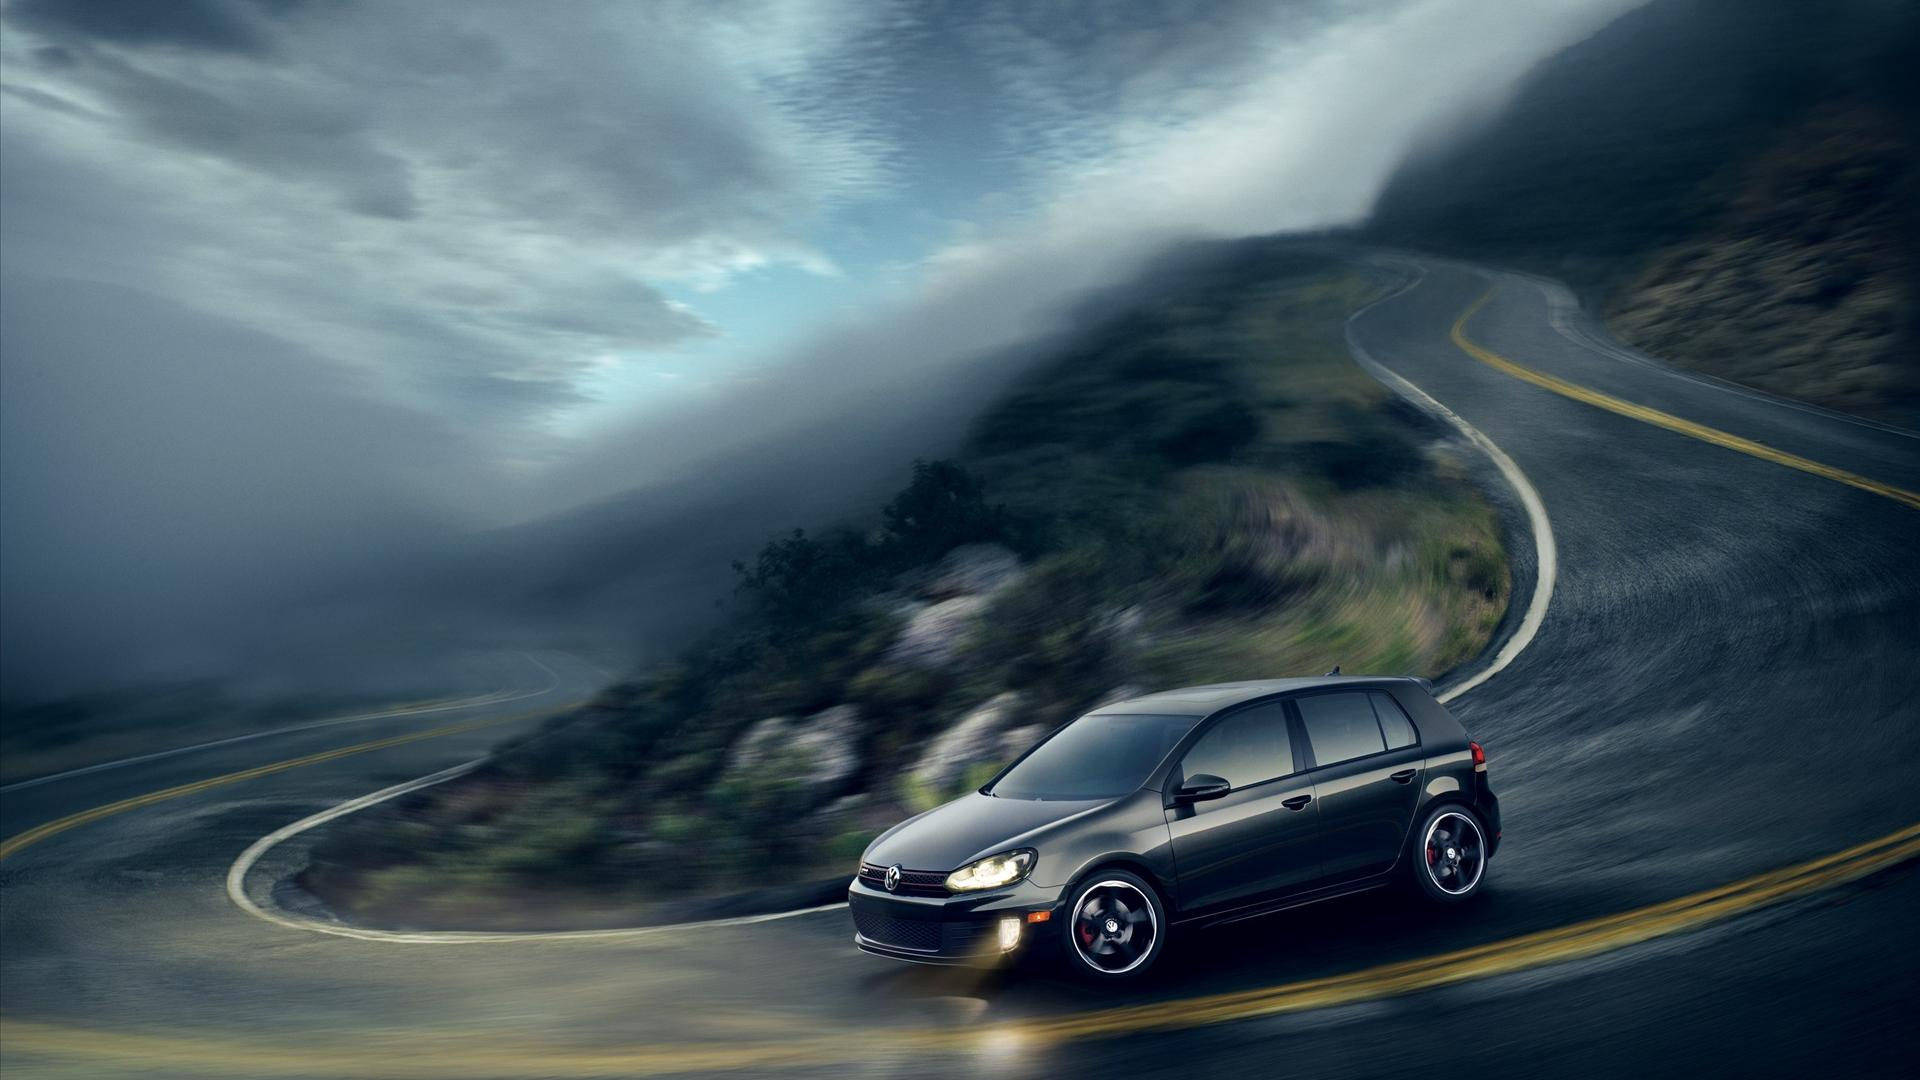 Golf-Gti-Wallpapers2